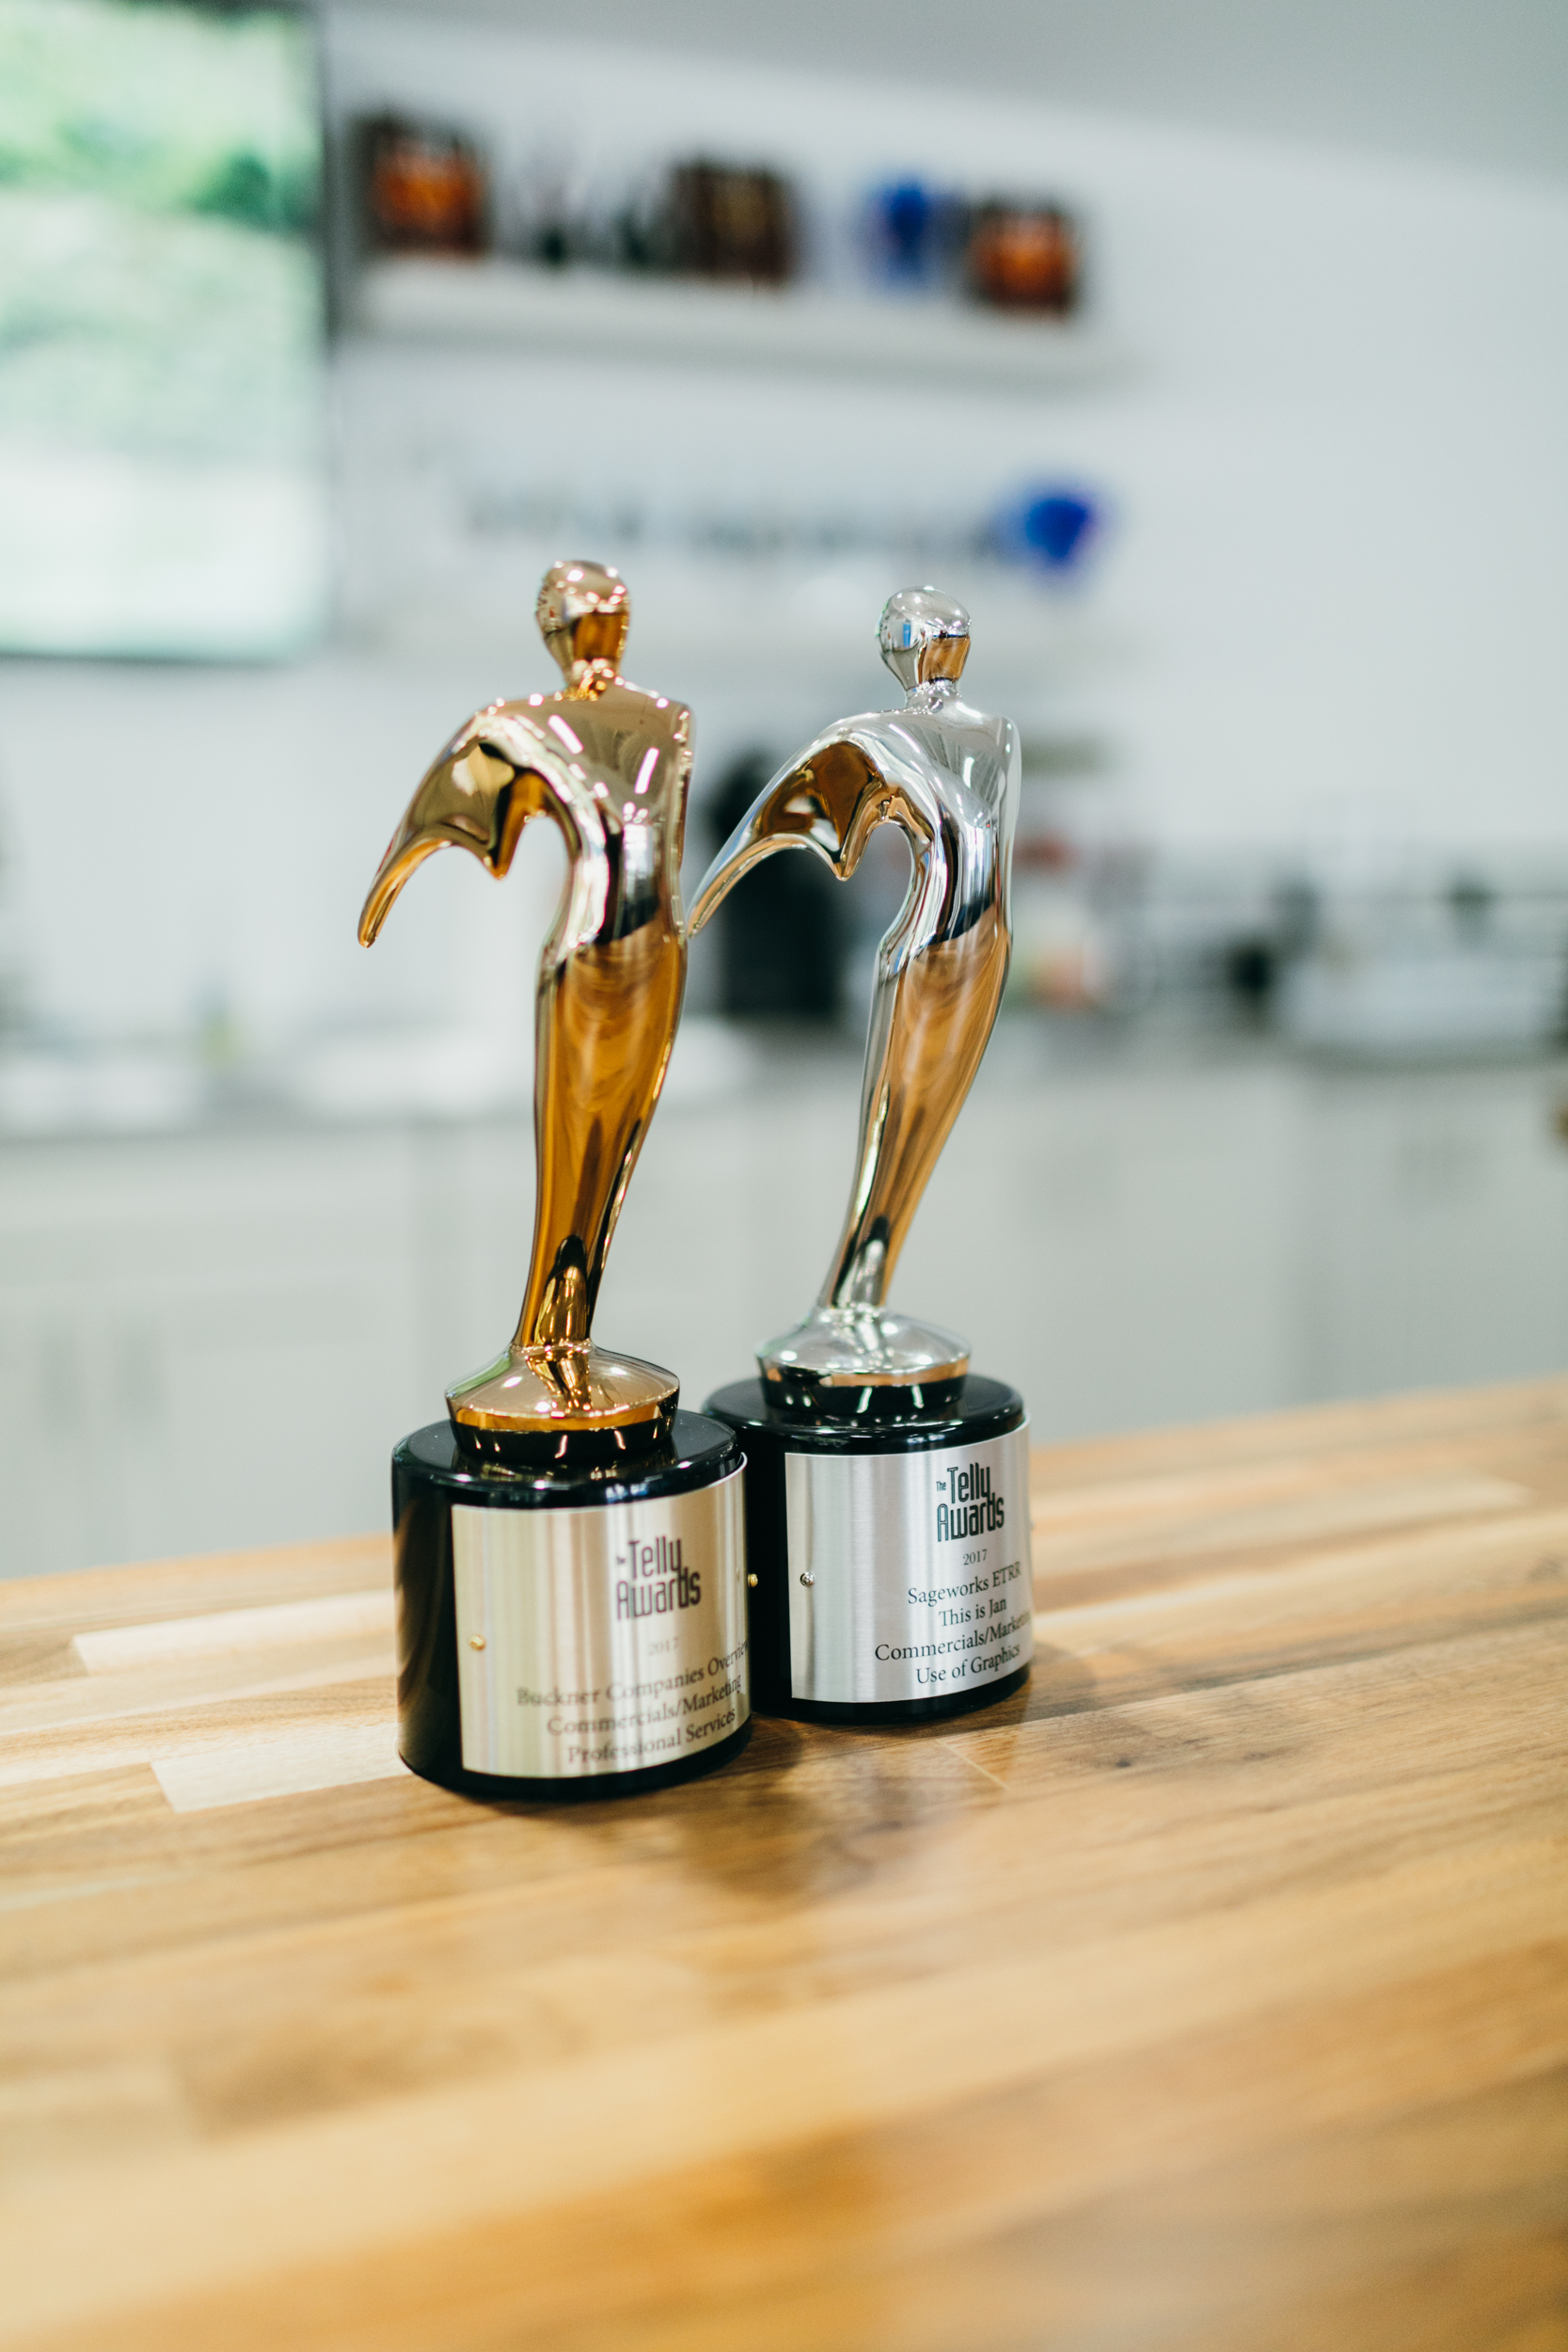 TriMark Digital Honored with Two Telly Awards - TriMark Digital